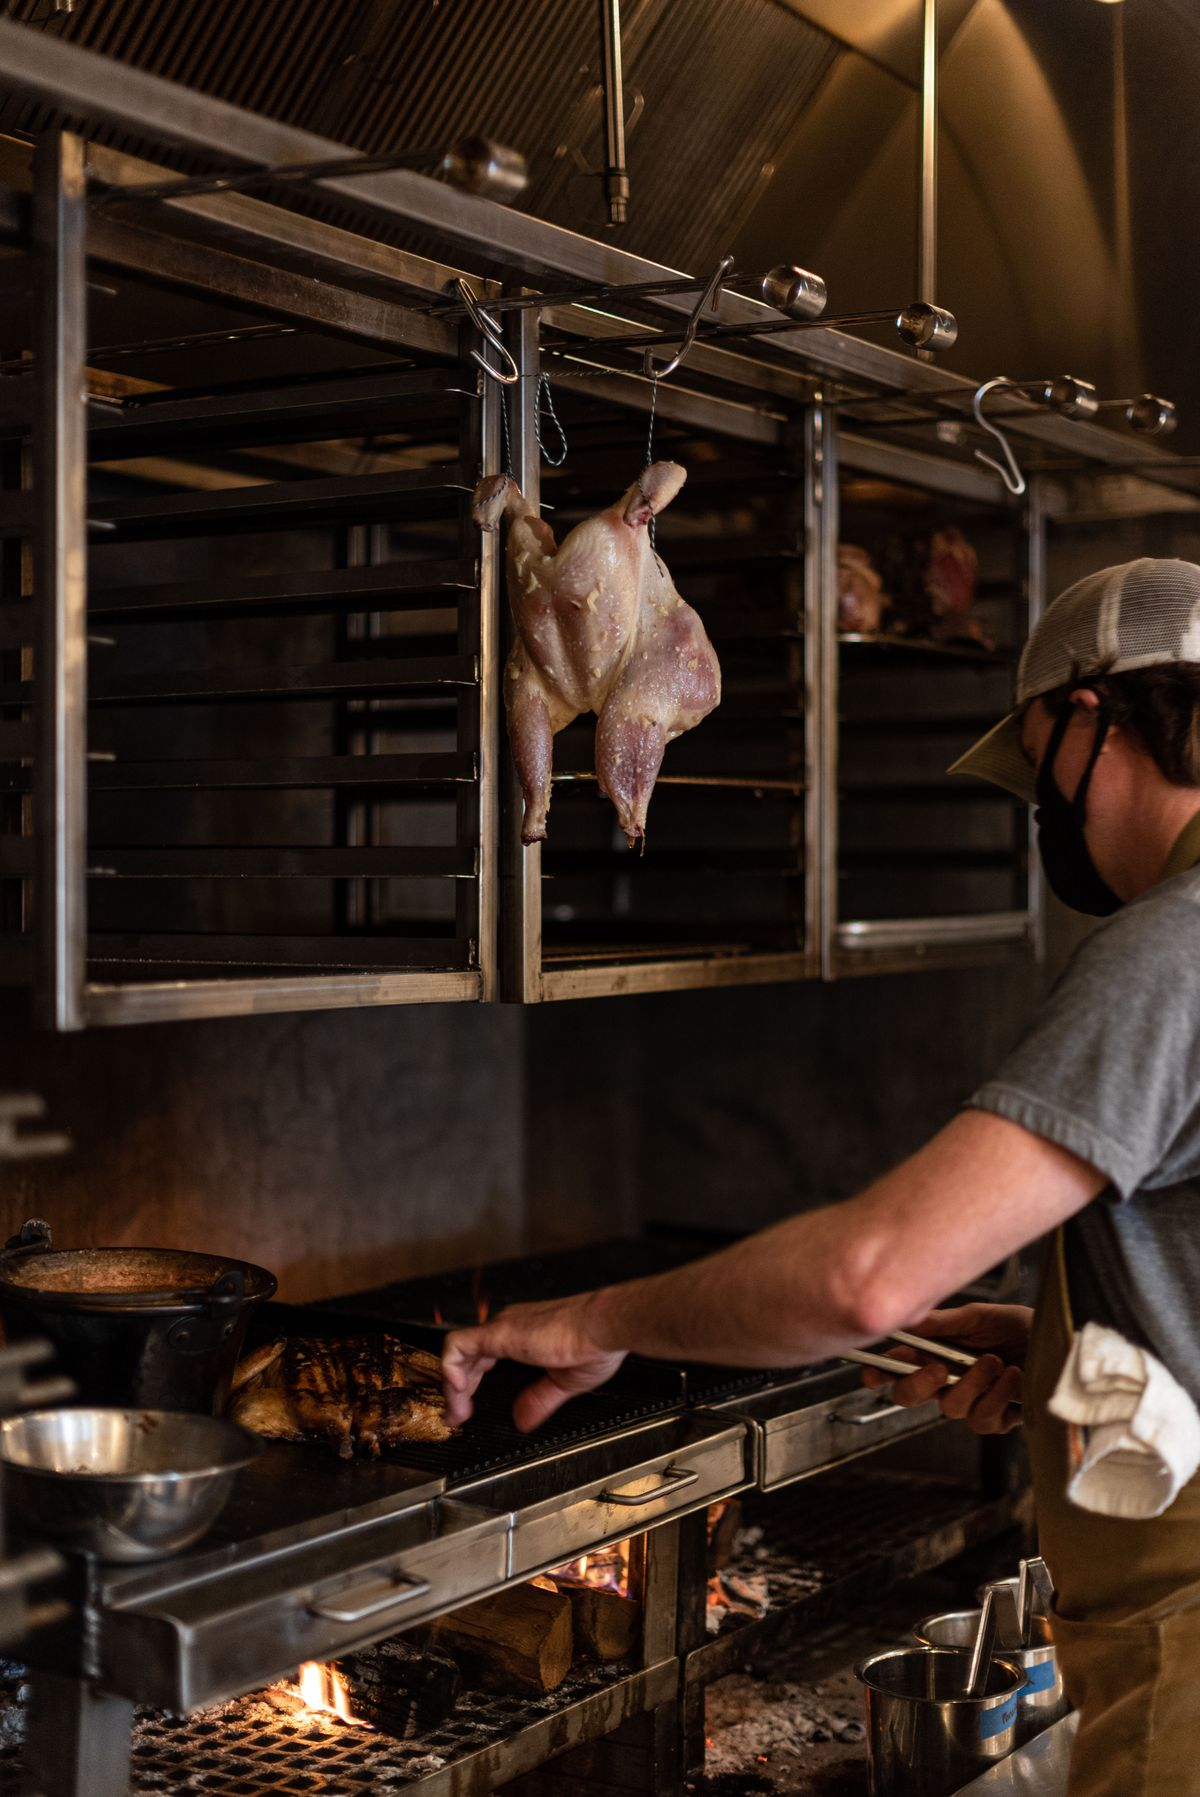 A worker touches meat on a live fire grill as chicken hangs above.